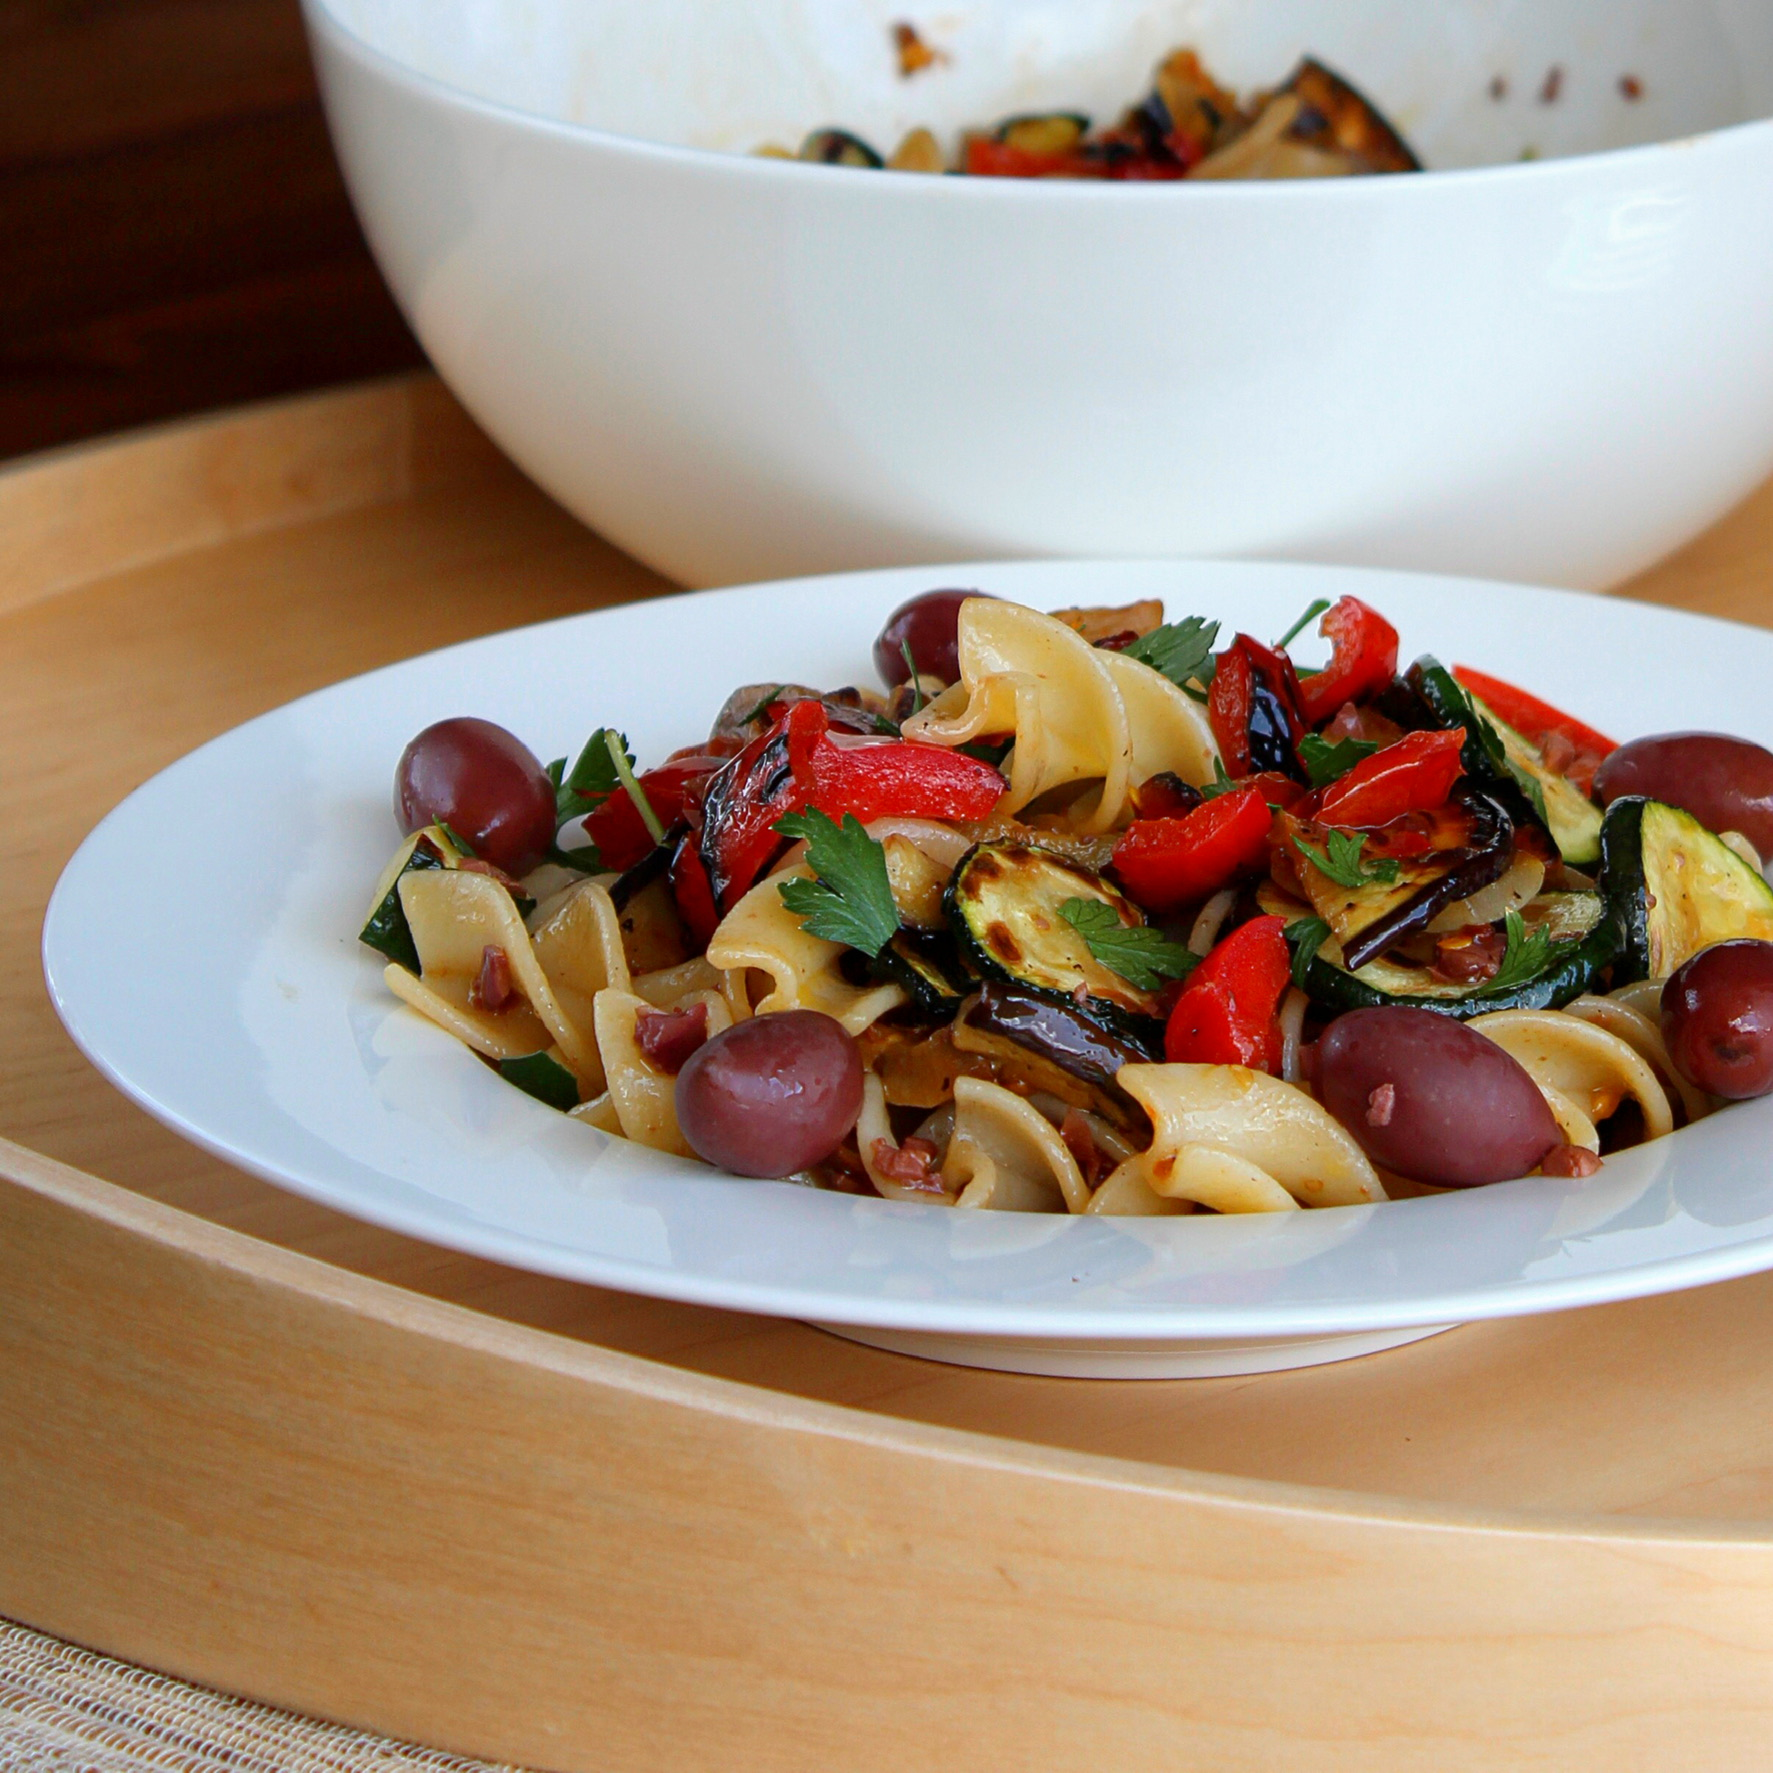 pasta salad with red peppers and kalamata olives